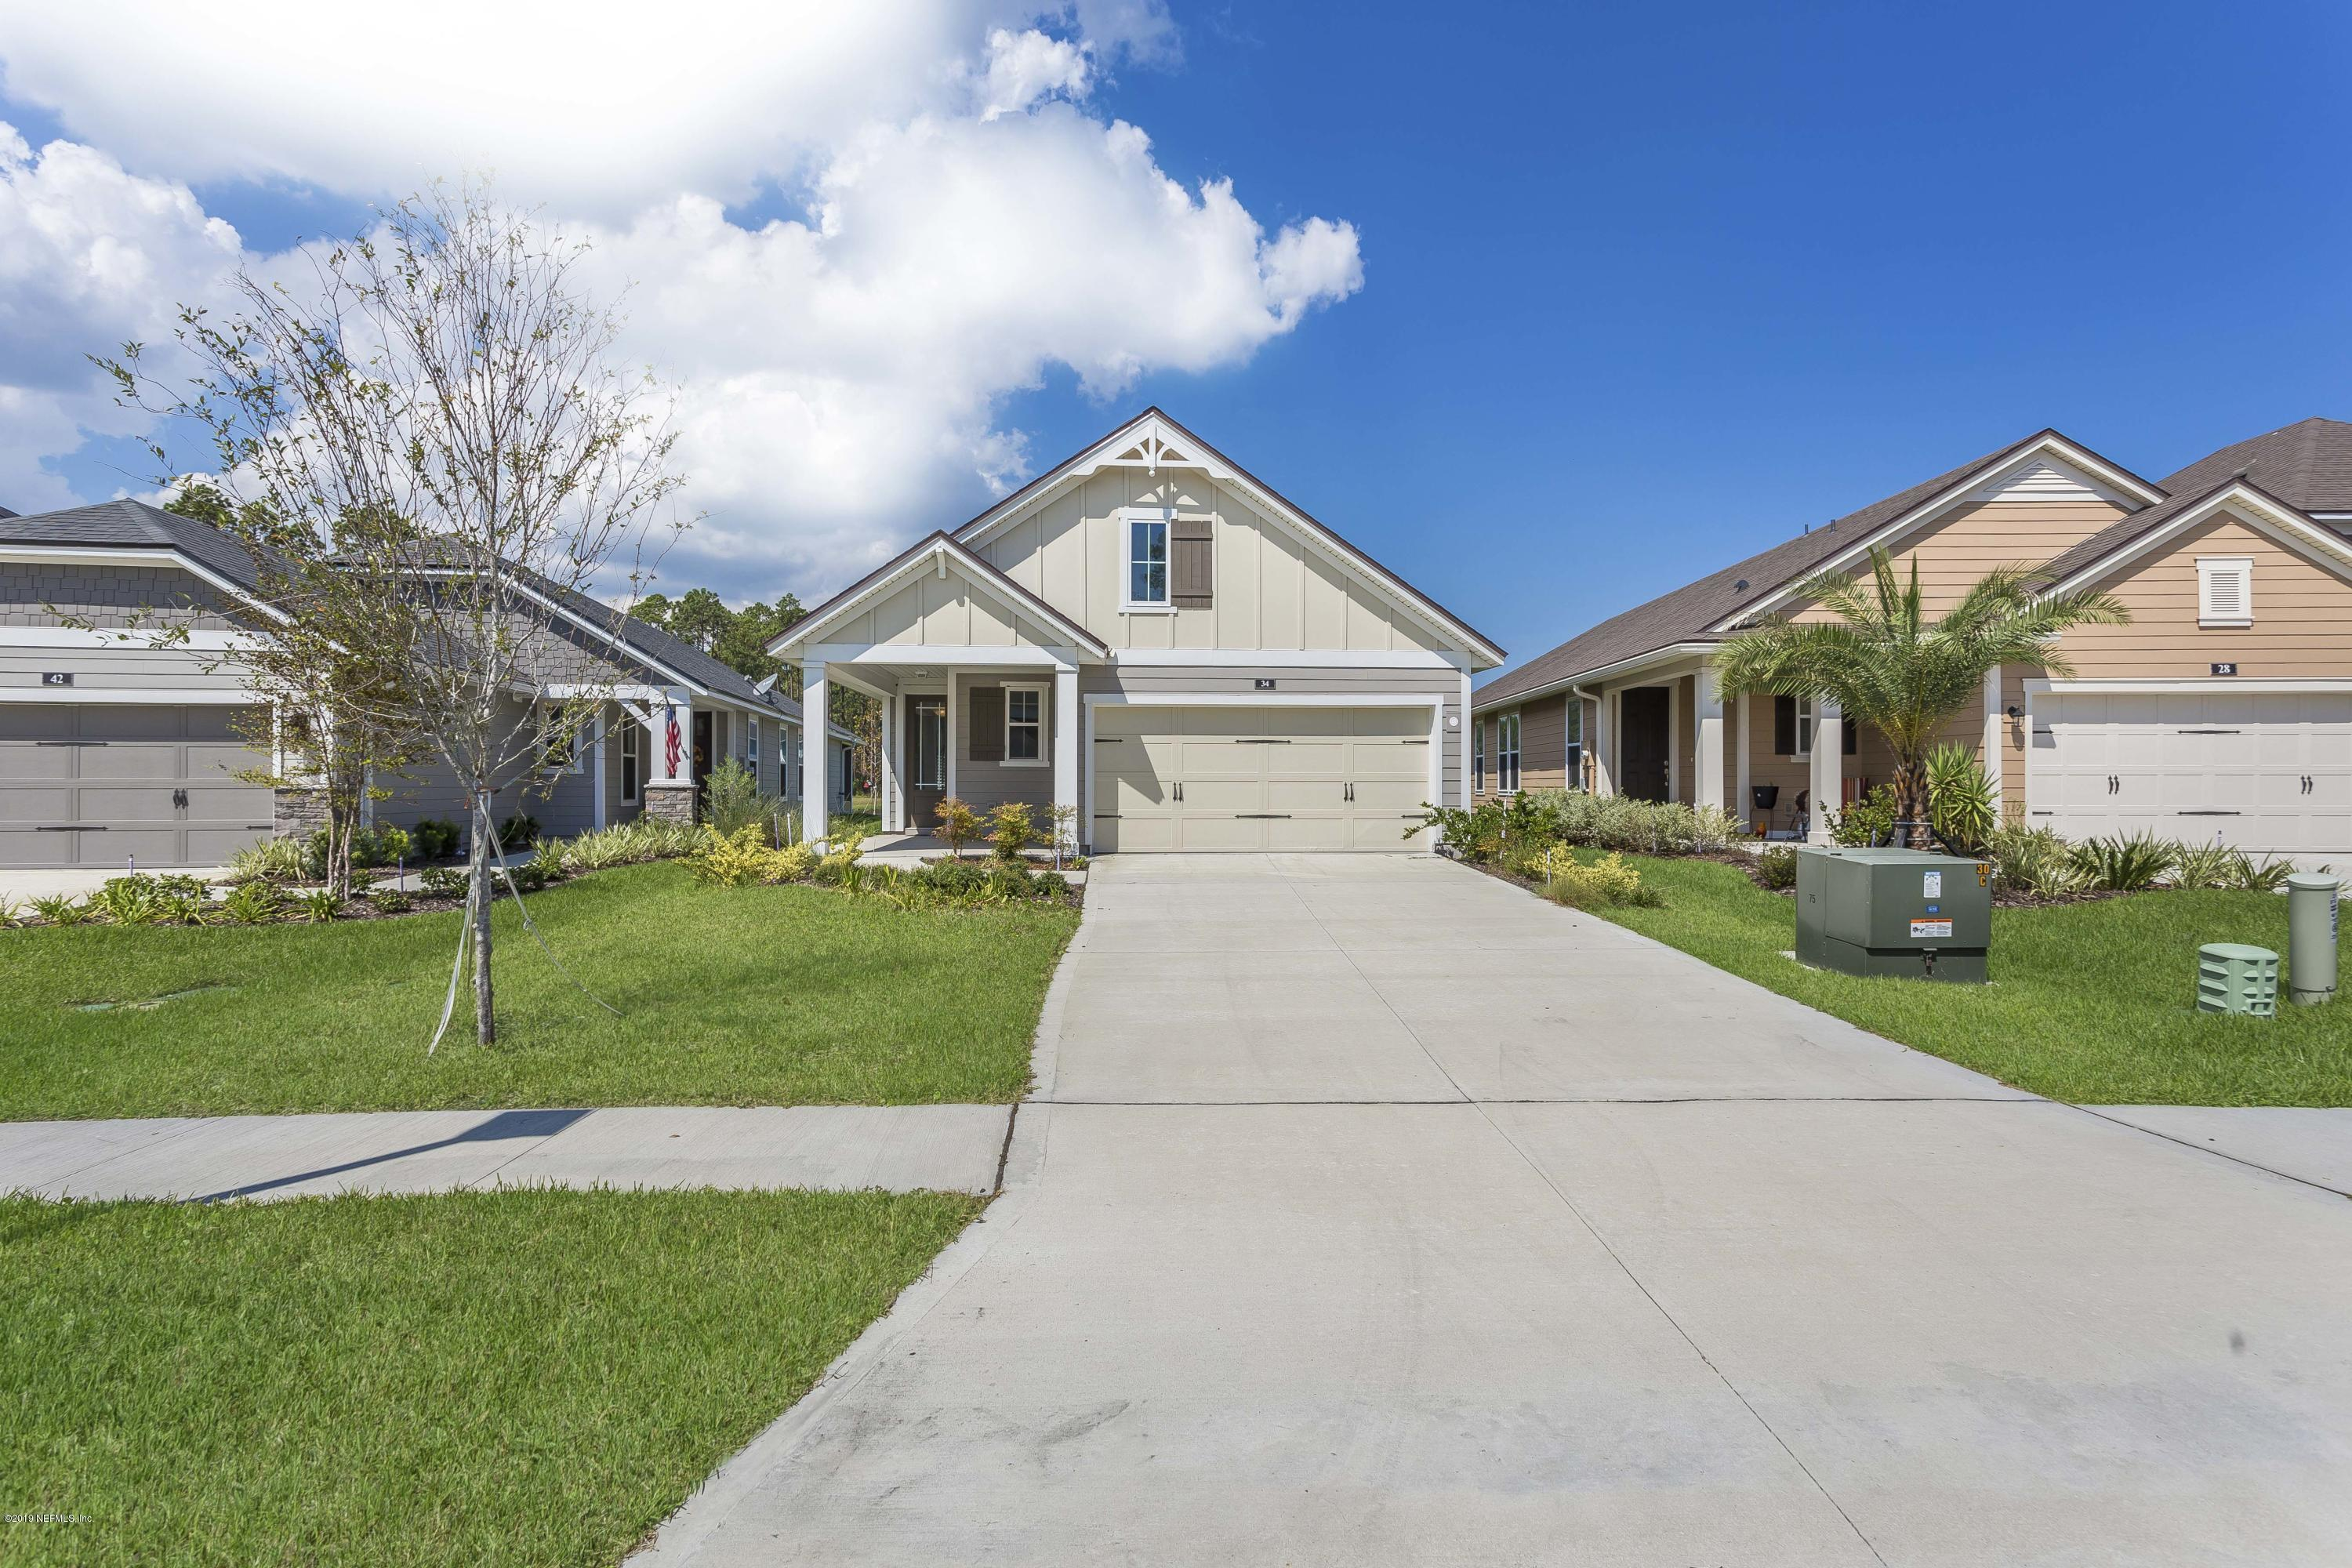 34 BISON, PONTE VEDRA, FLORIDA 32081, 3 Bedrooms Bedrooms, ,2 BathroomsBathrooms,Residential - single family,For sale,BISON,976597